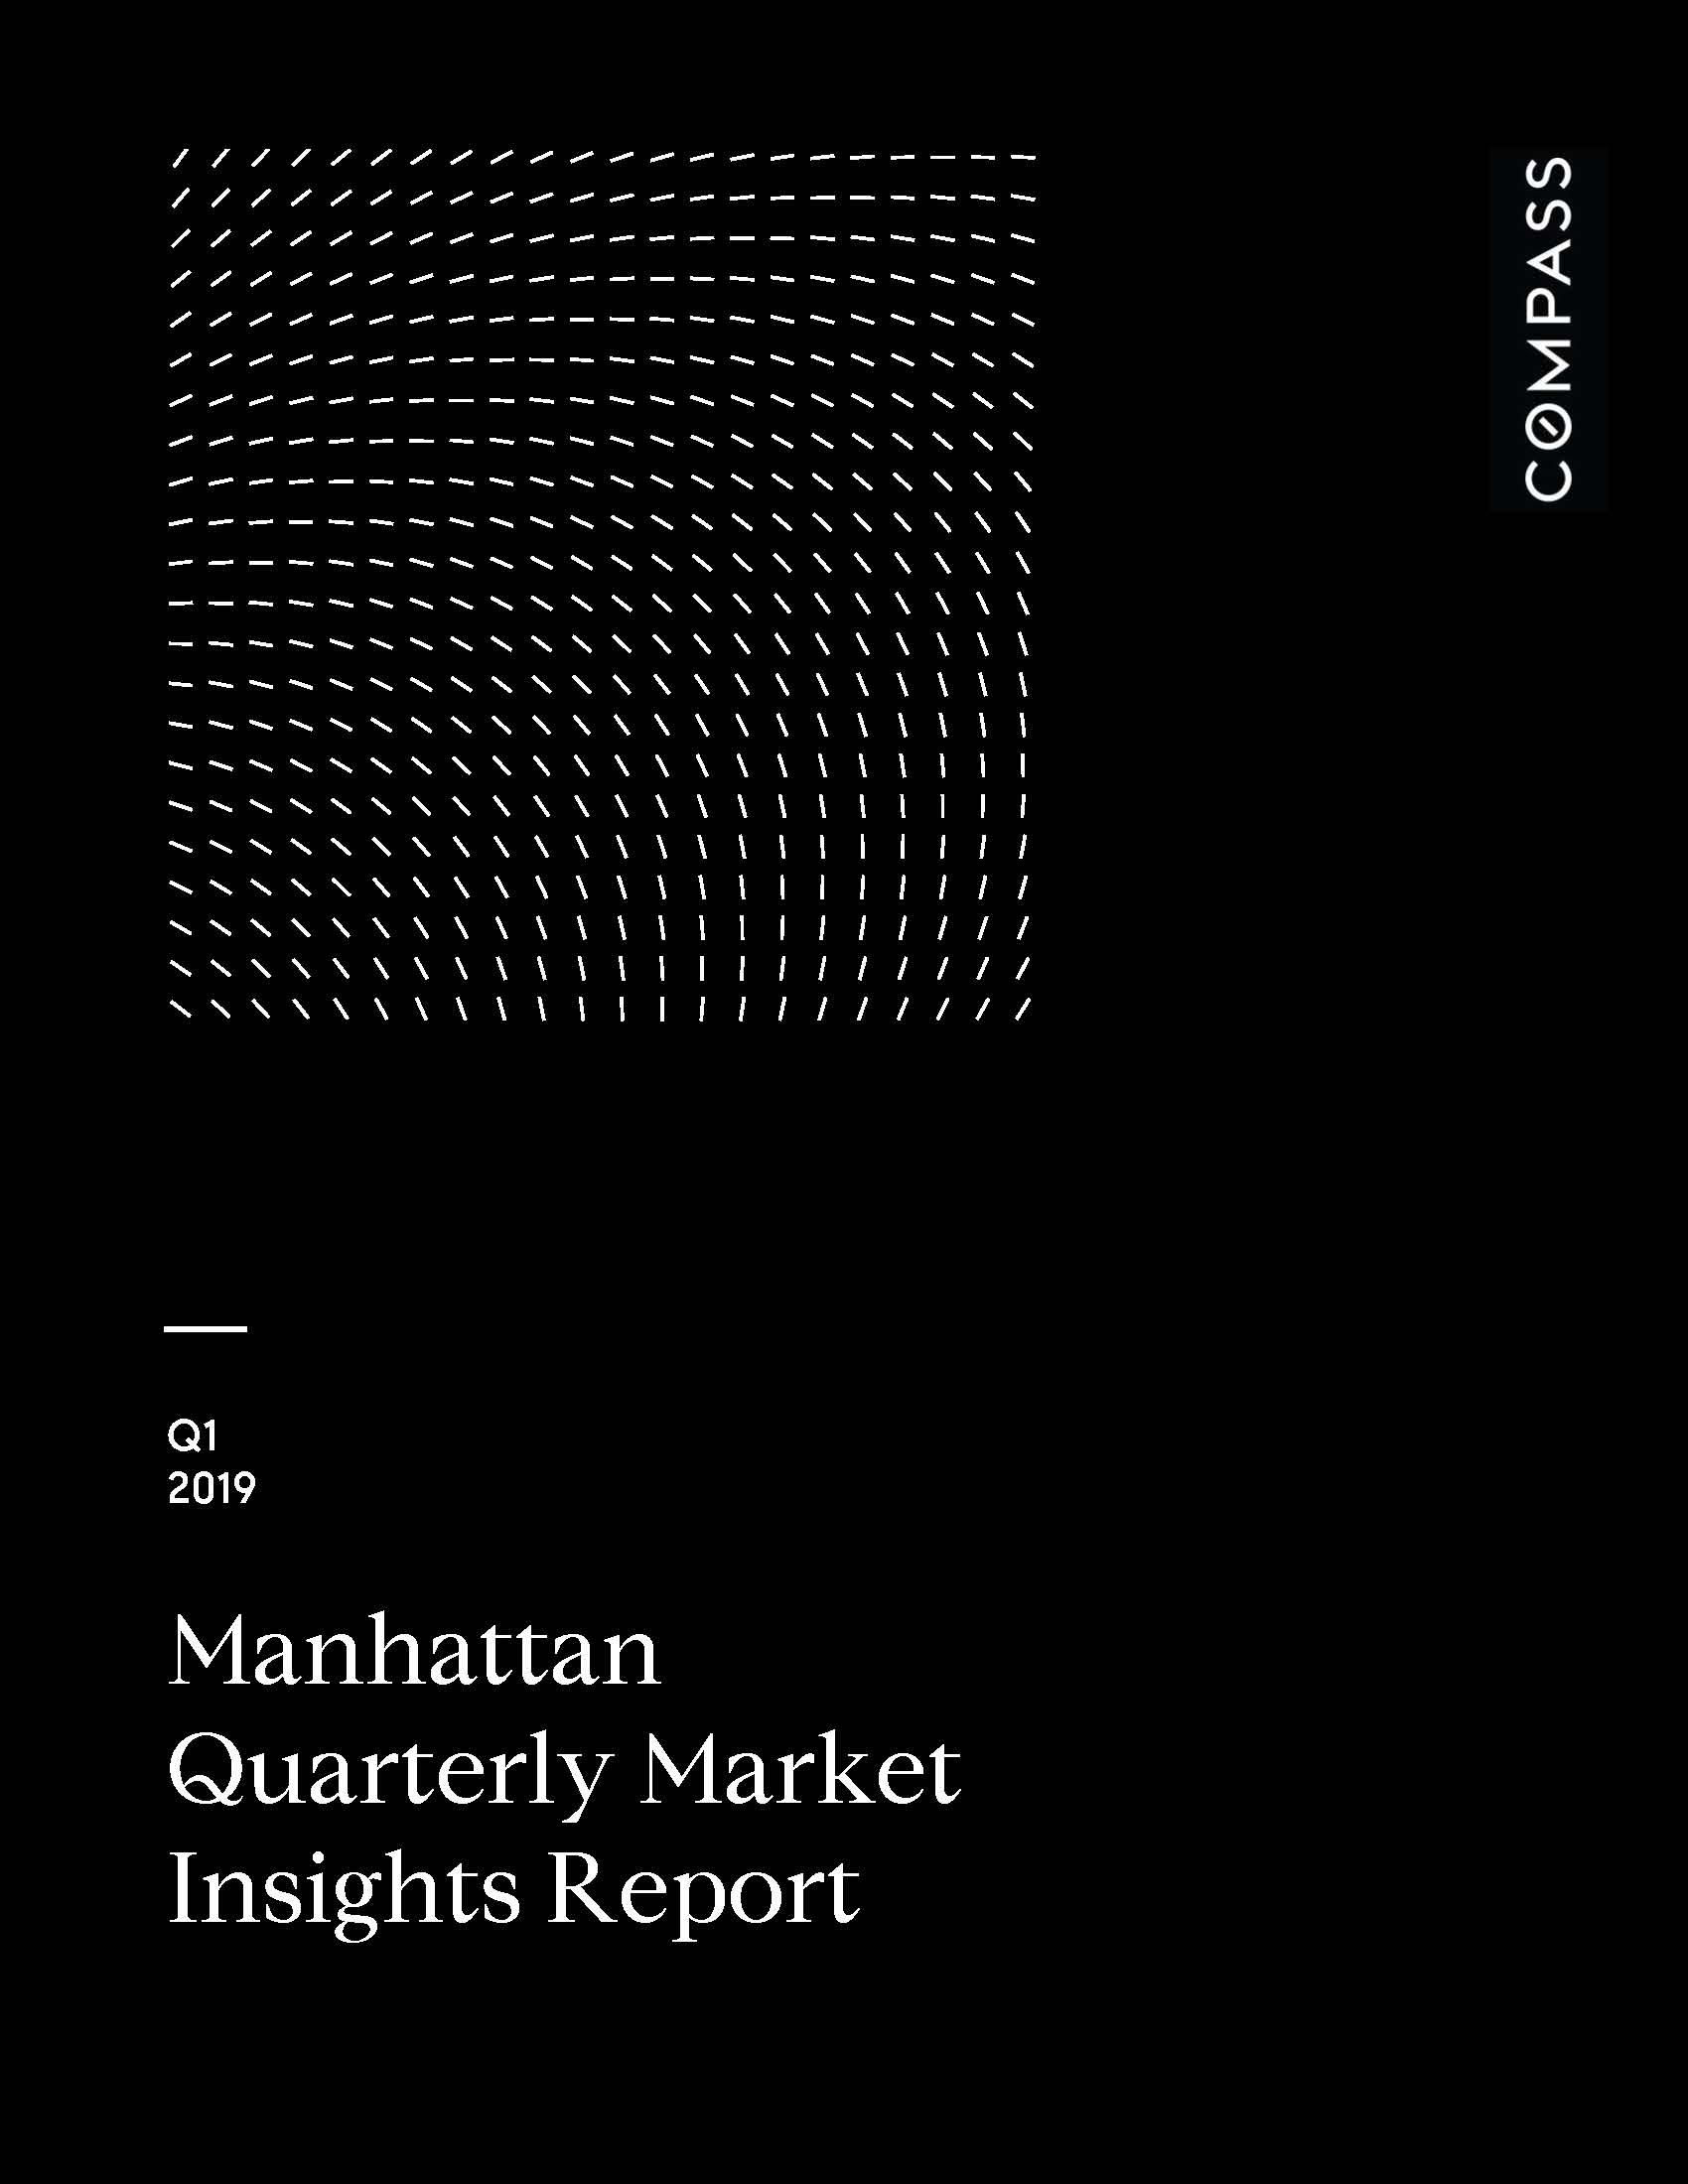 Manhattan Quarterly Market Insights Report - Q1 2019